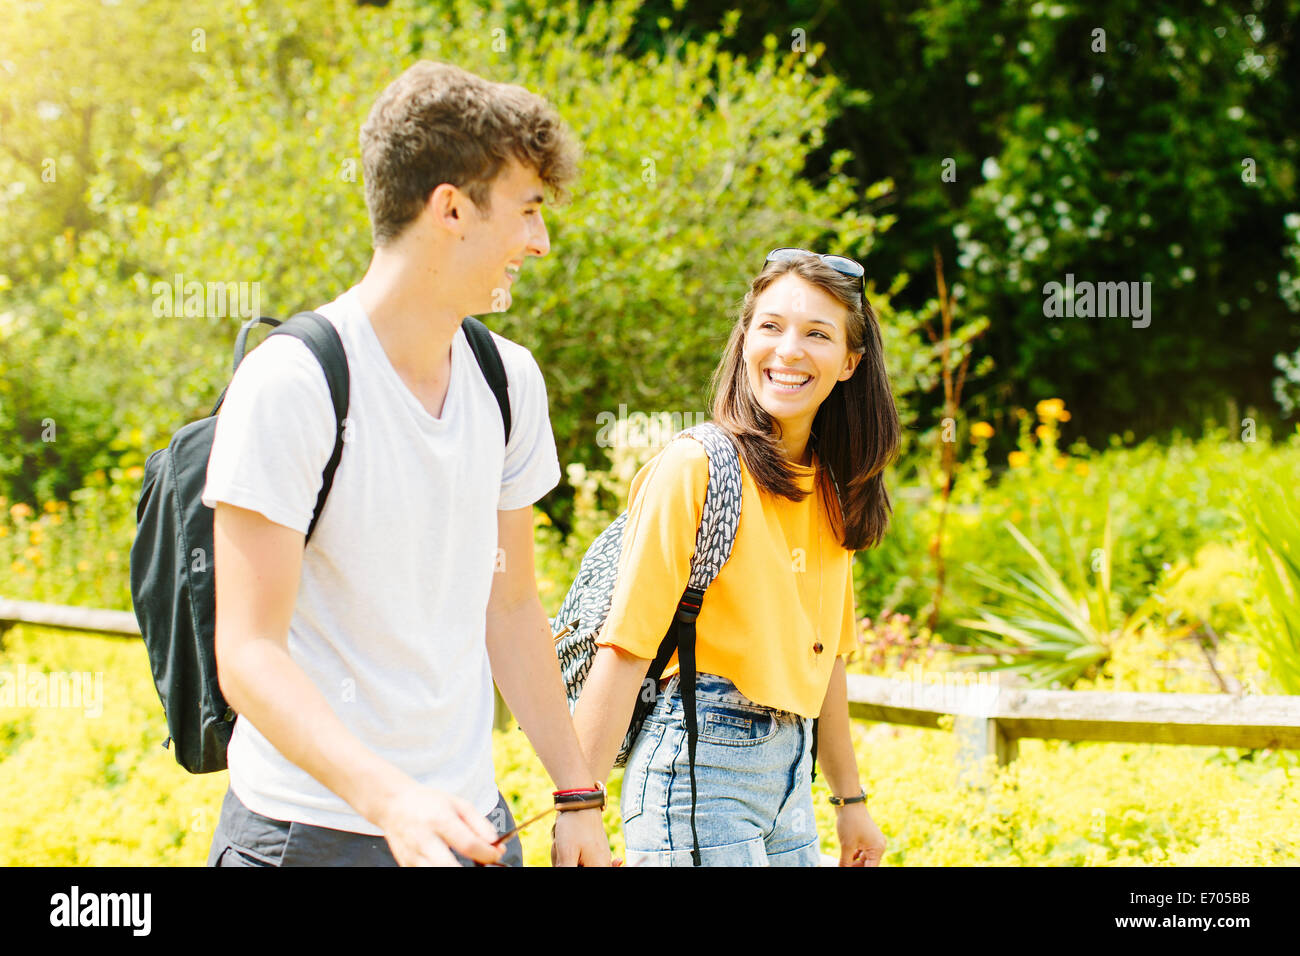 Couple walking in the park - Stock Image